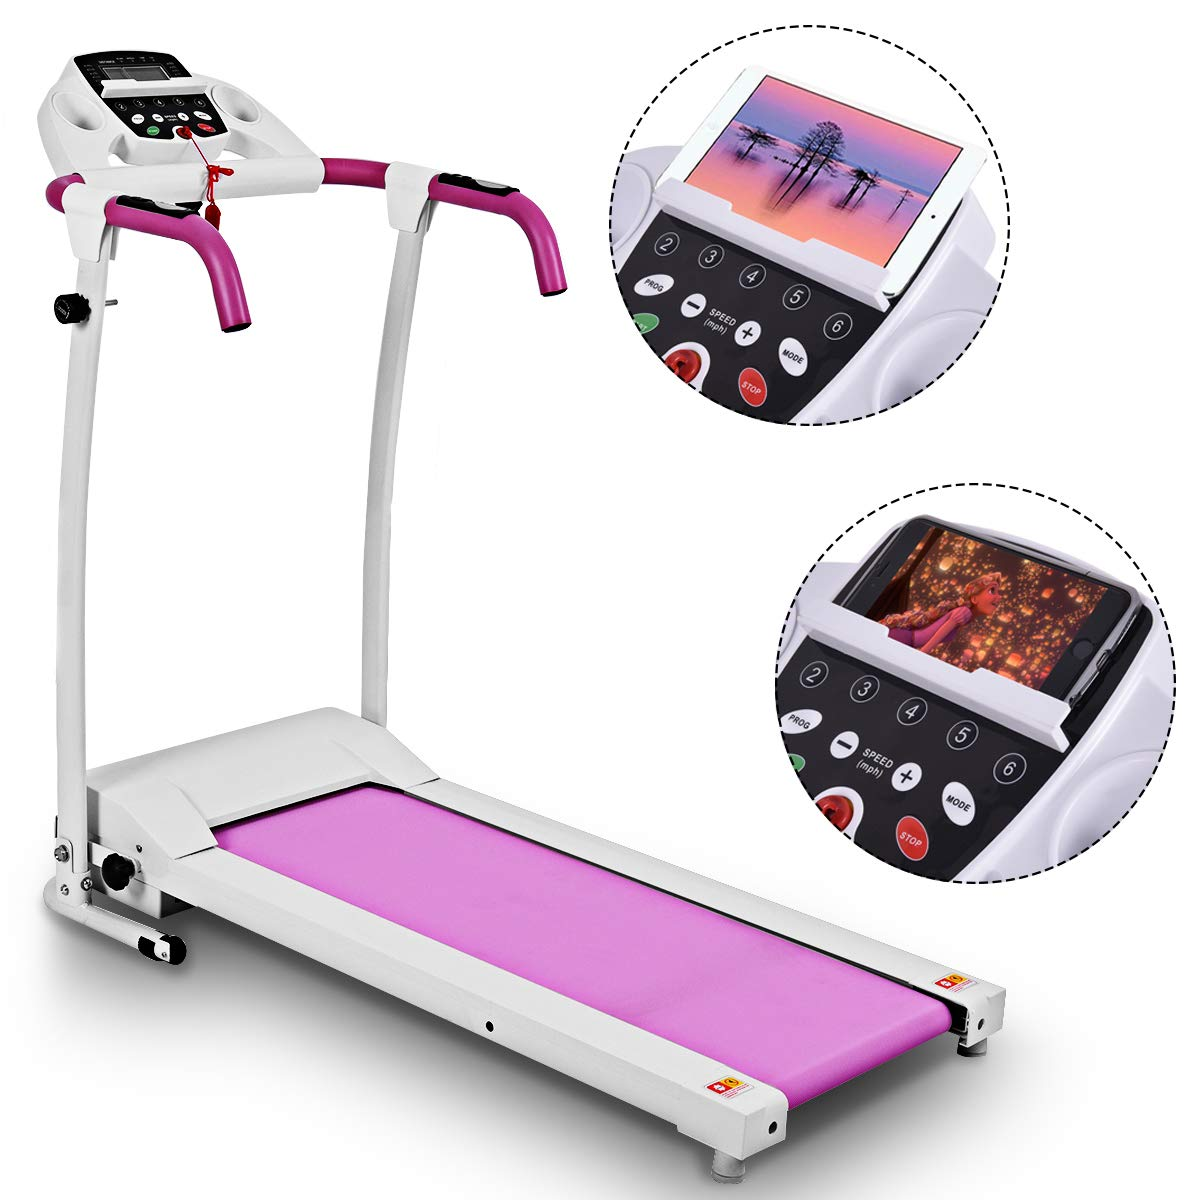 Goplus 800W Folding Treadmill Electric Motorized Power Fitness Running Machine with LED Display and Mobile Phone Holder Perfect for Home Use (Pink) by Goplus (Image #8)